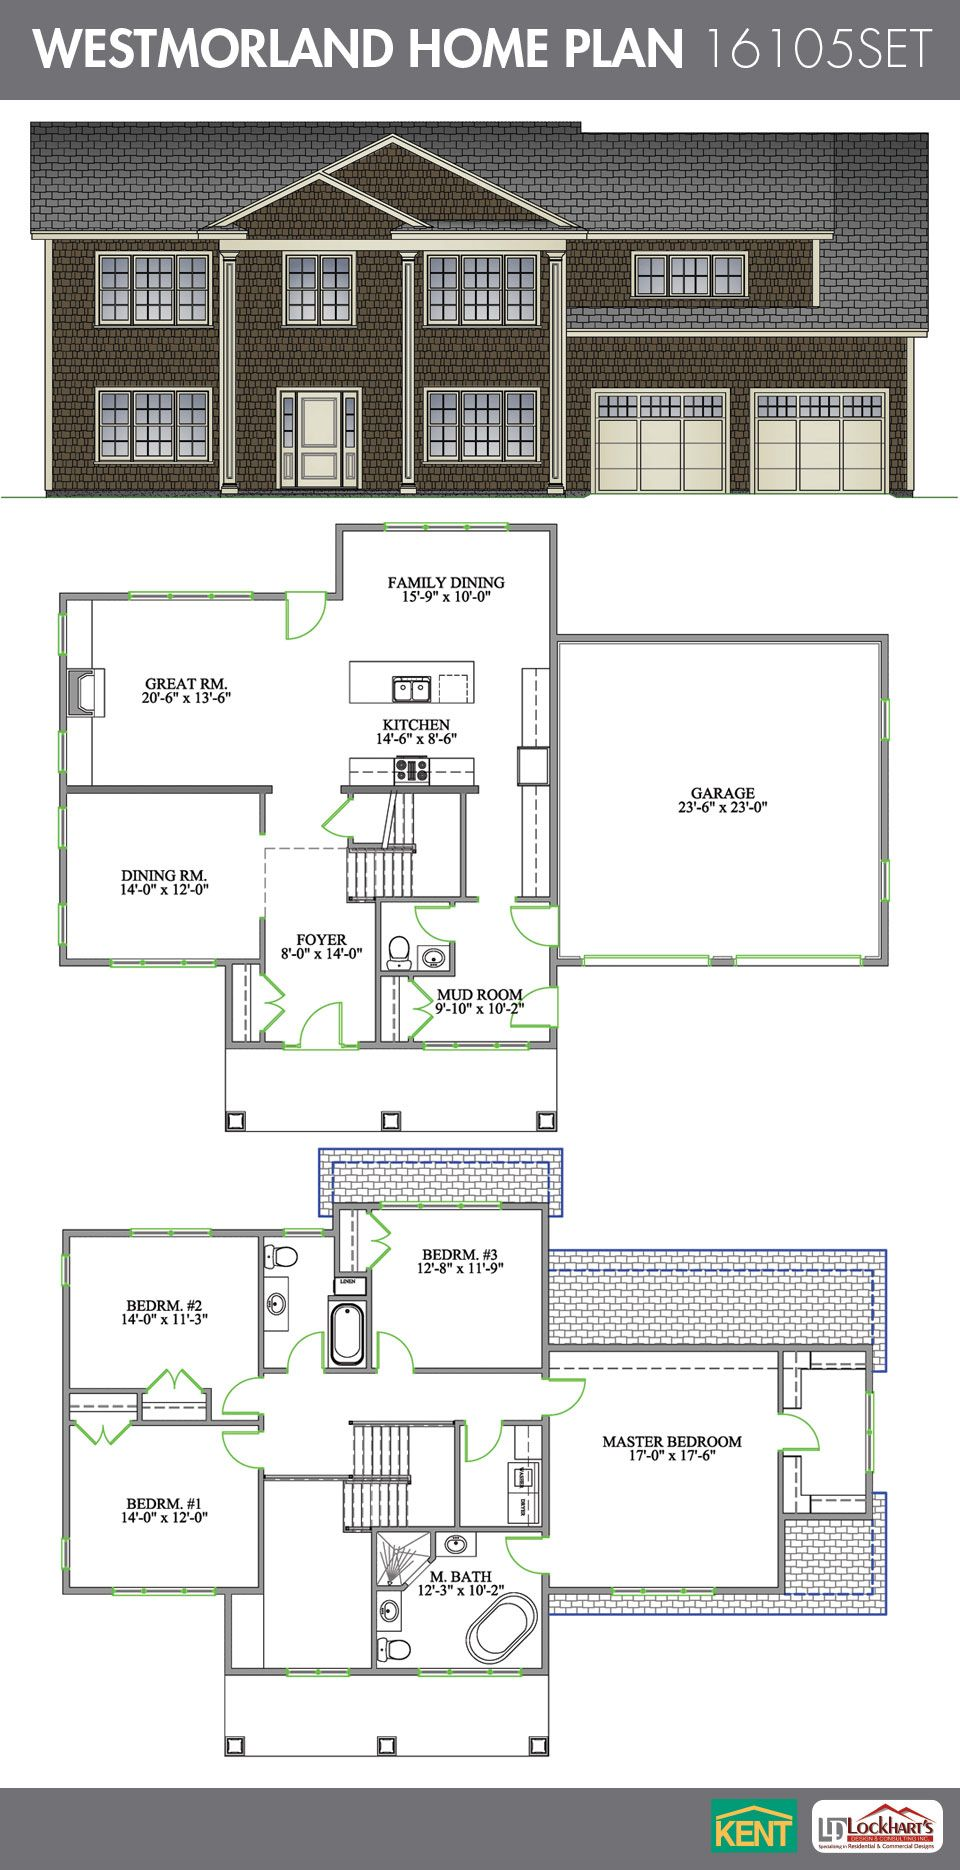 Westmorland 4 Bedroom 2 1 Bathroom Home Plan Features Open Dream PlansHouse PlansFormal Dining RoomsOpen